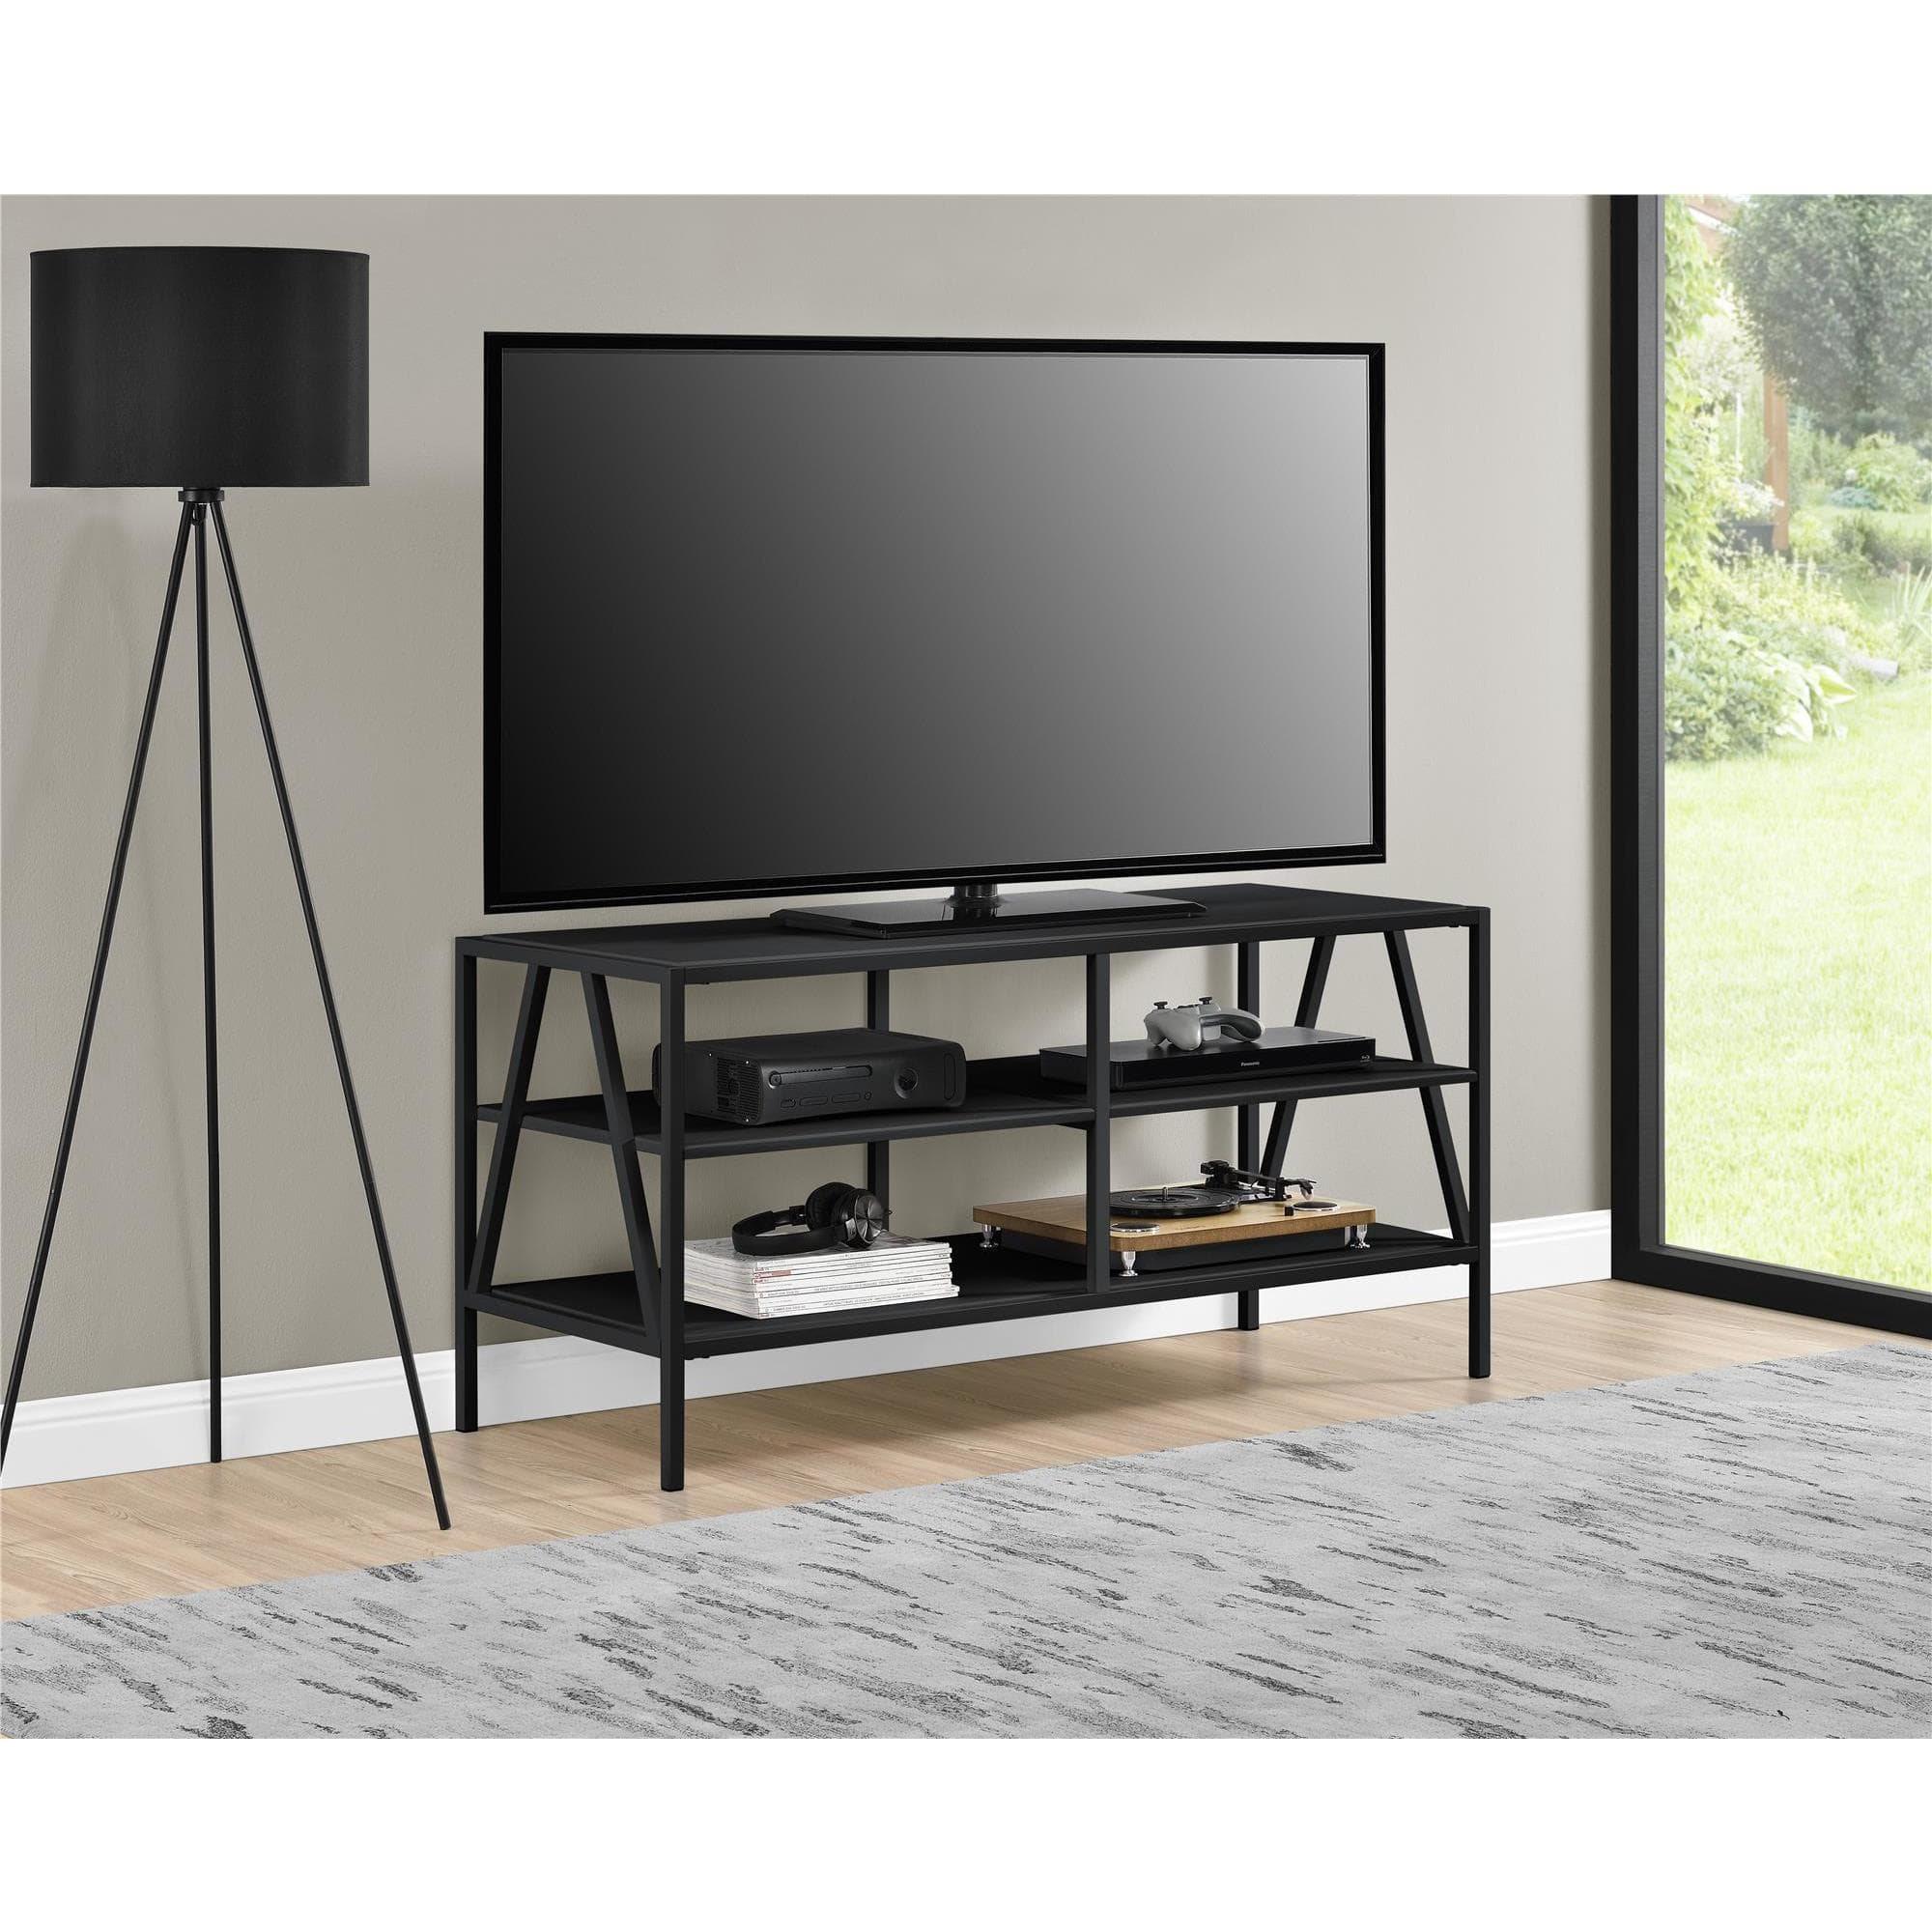 "Novogratz Avondale TV Stand for TVs up to 50"" Wide, Multiple Colors"